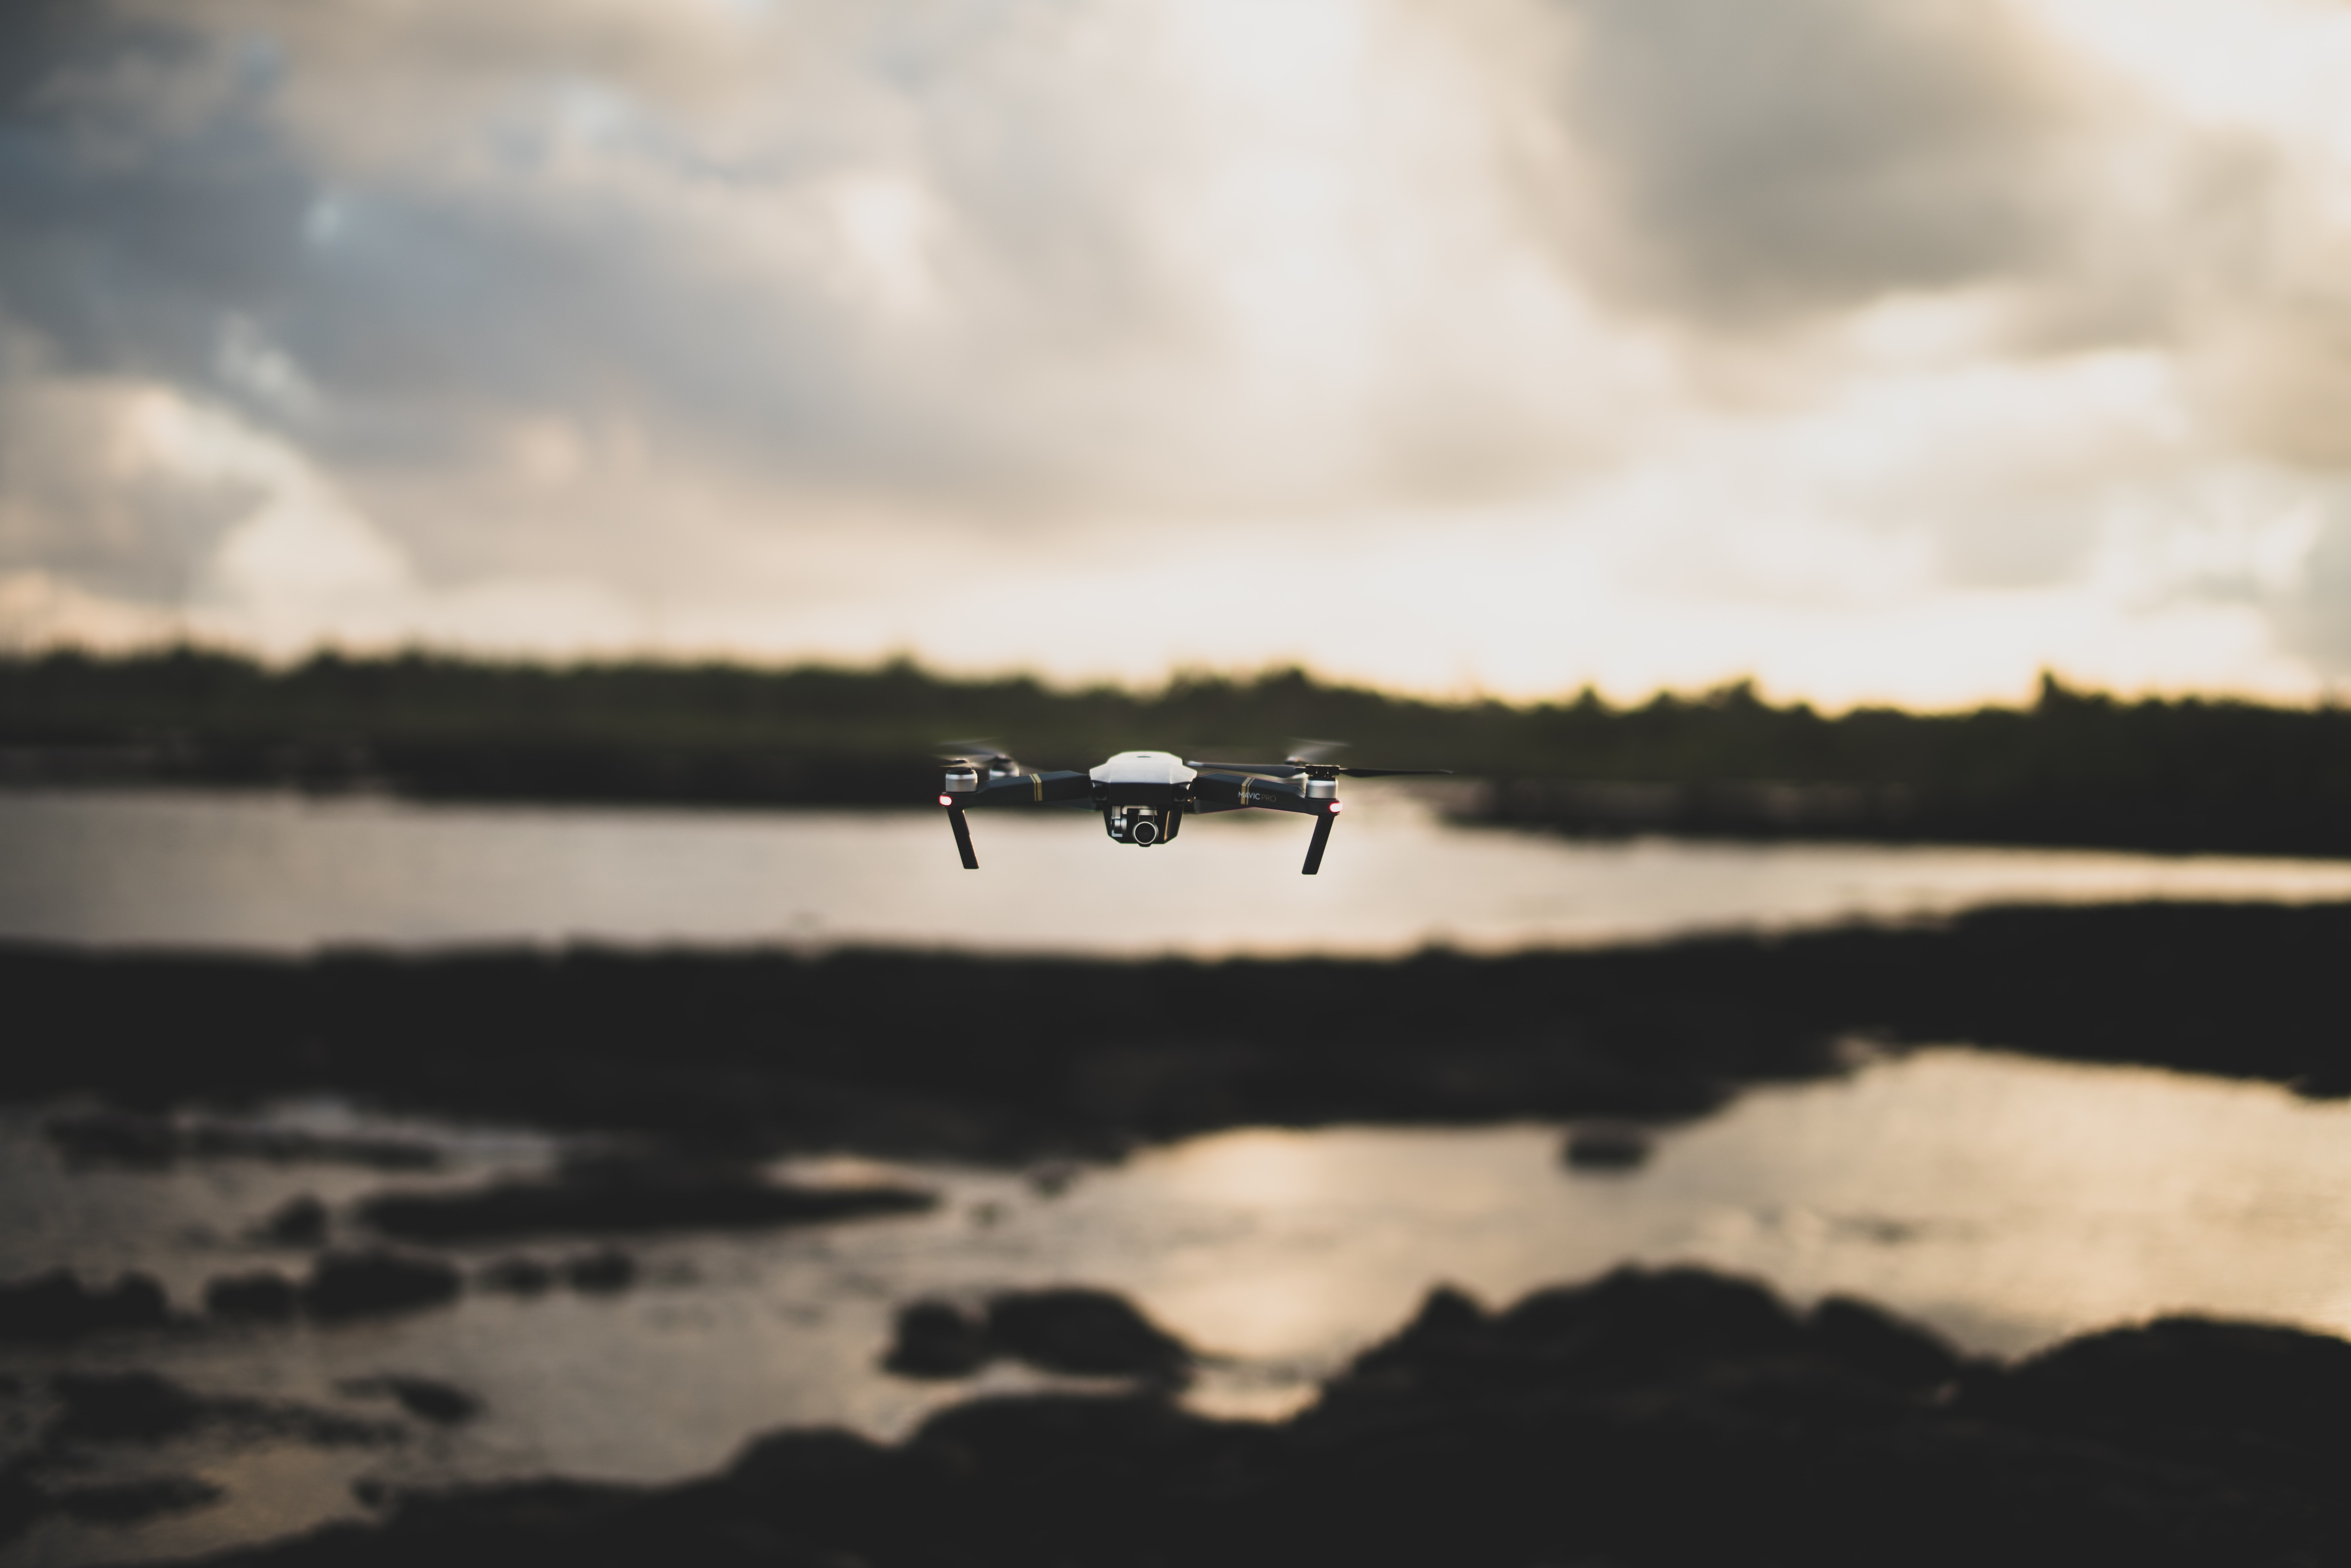 flying white and black drone during daytime